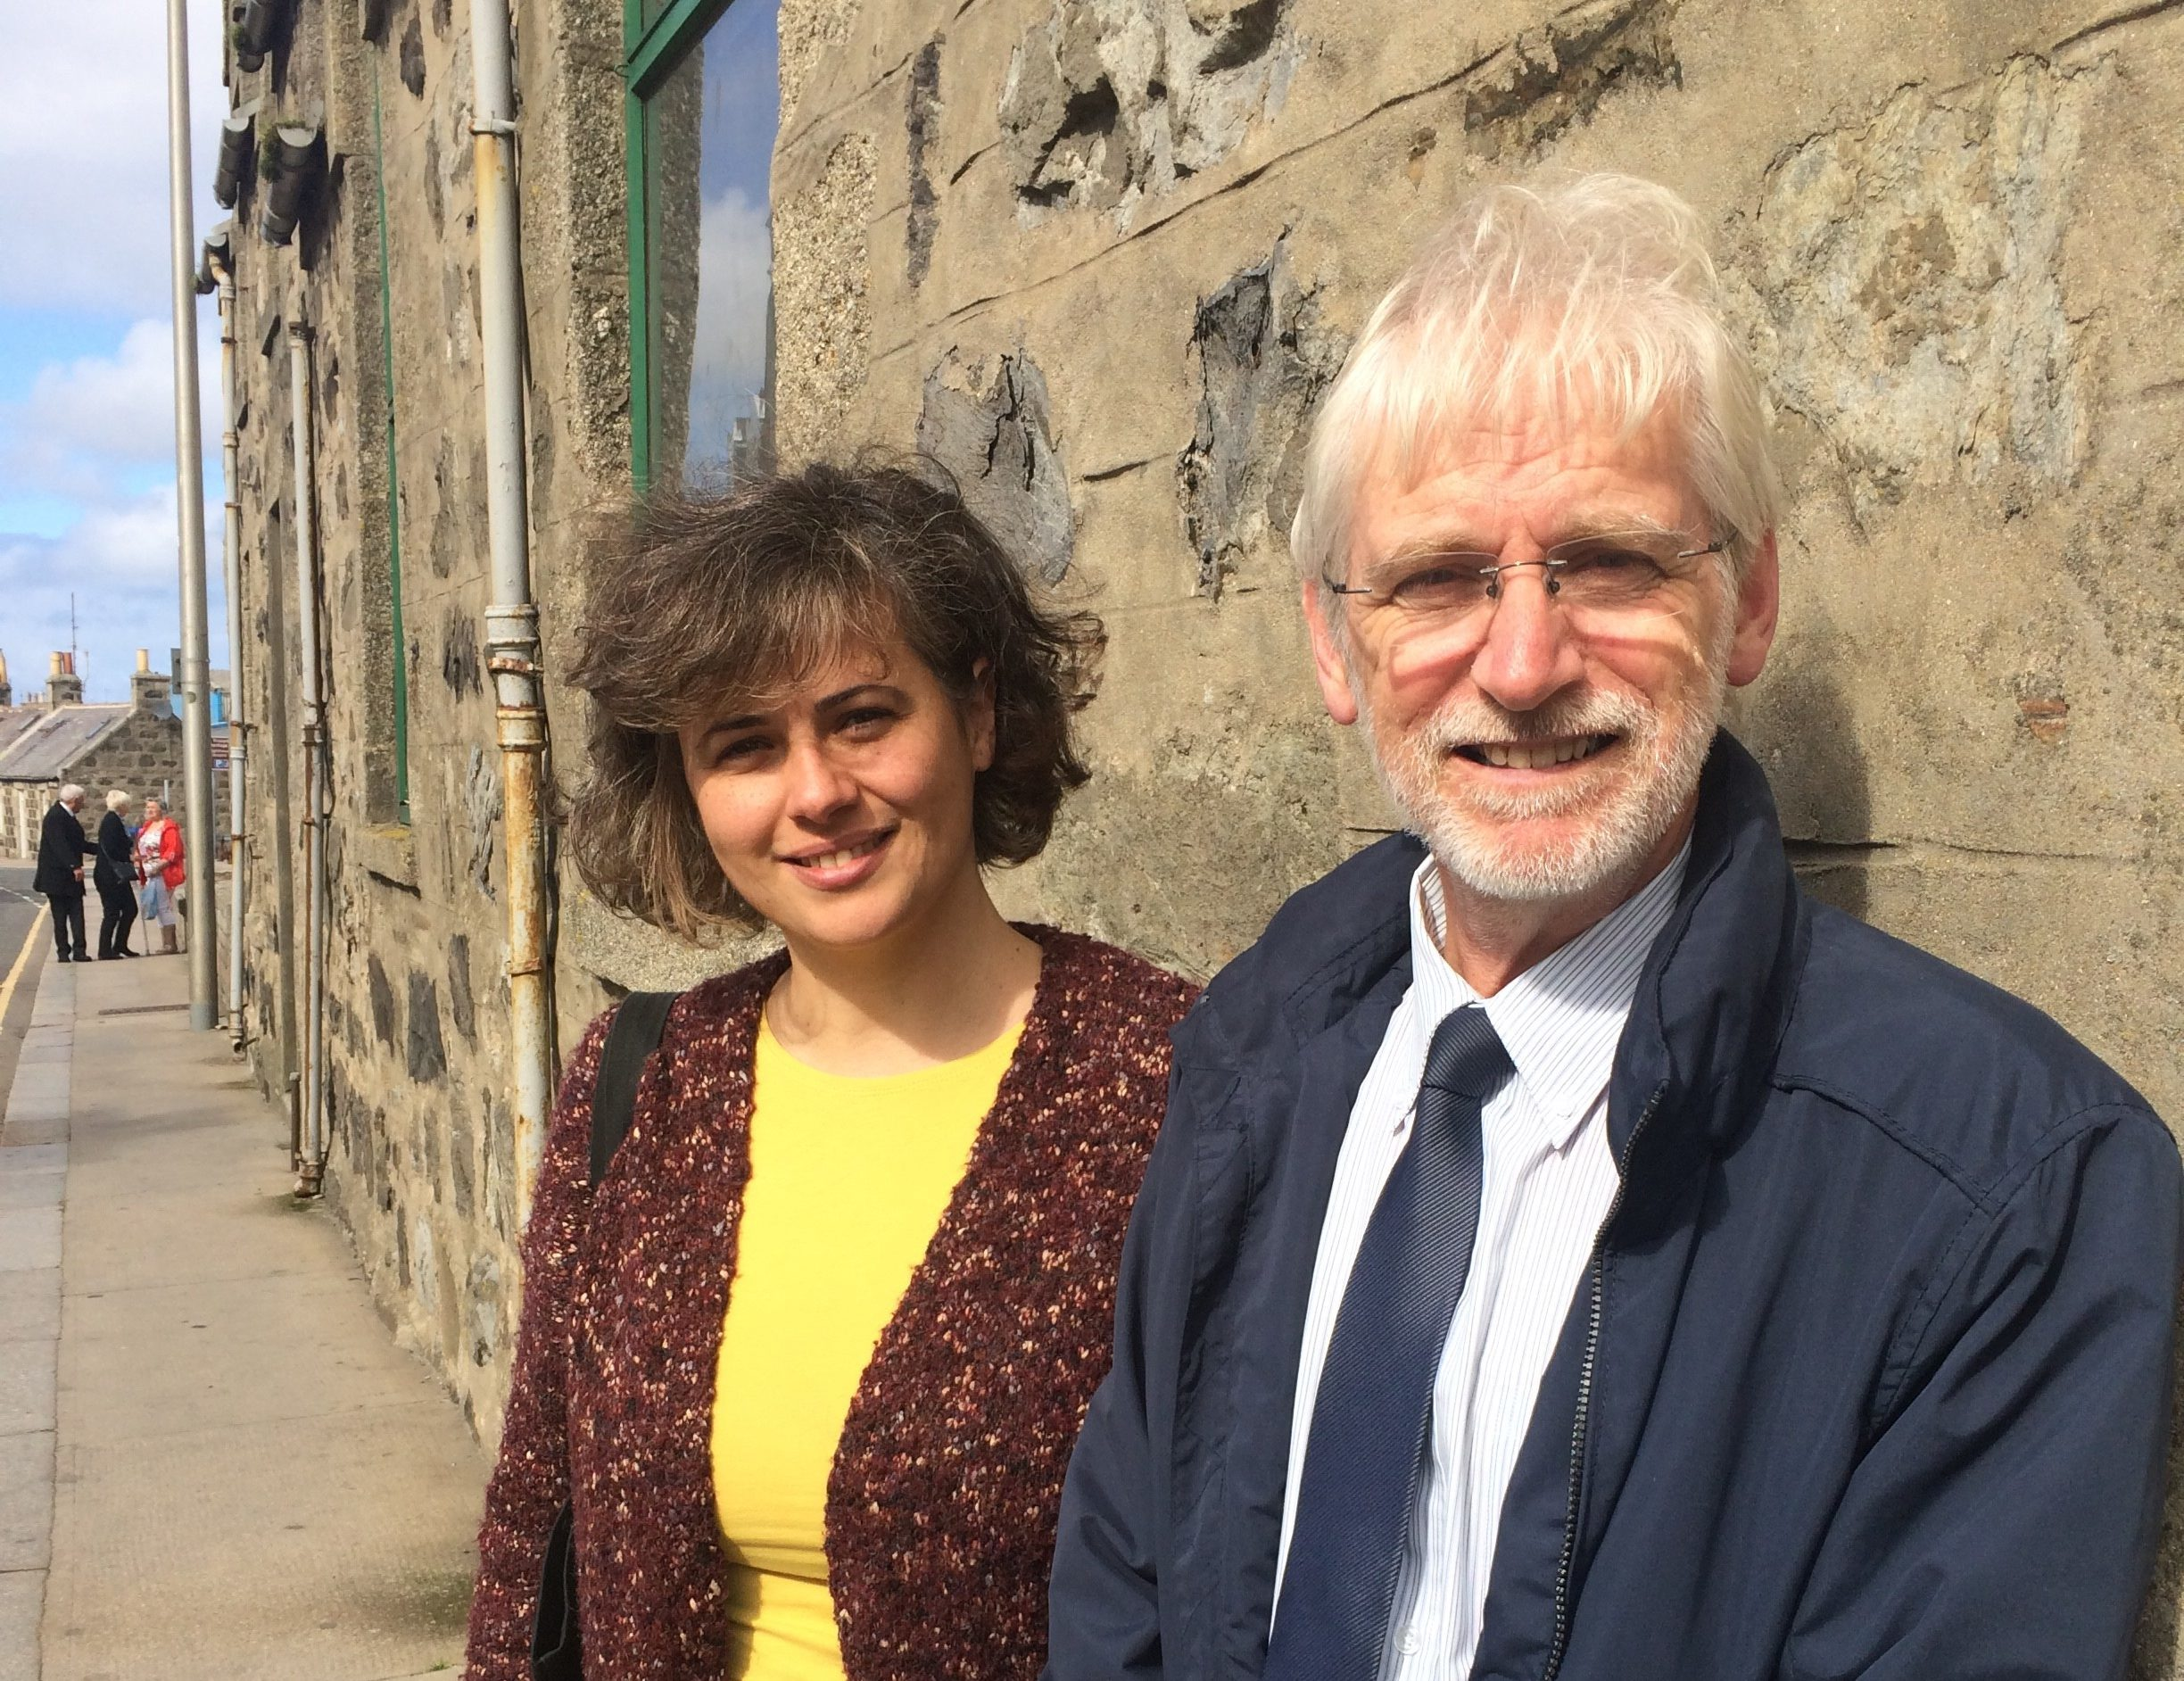 Sofia Oliveira, small grants officer, Fraserburgh 2021 and Jim Buchan, church officer, Fraserburgh Old Parish Church, in front of the Penny Schoolie in Fraserburgh